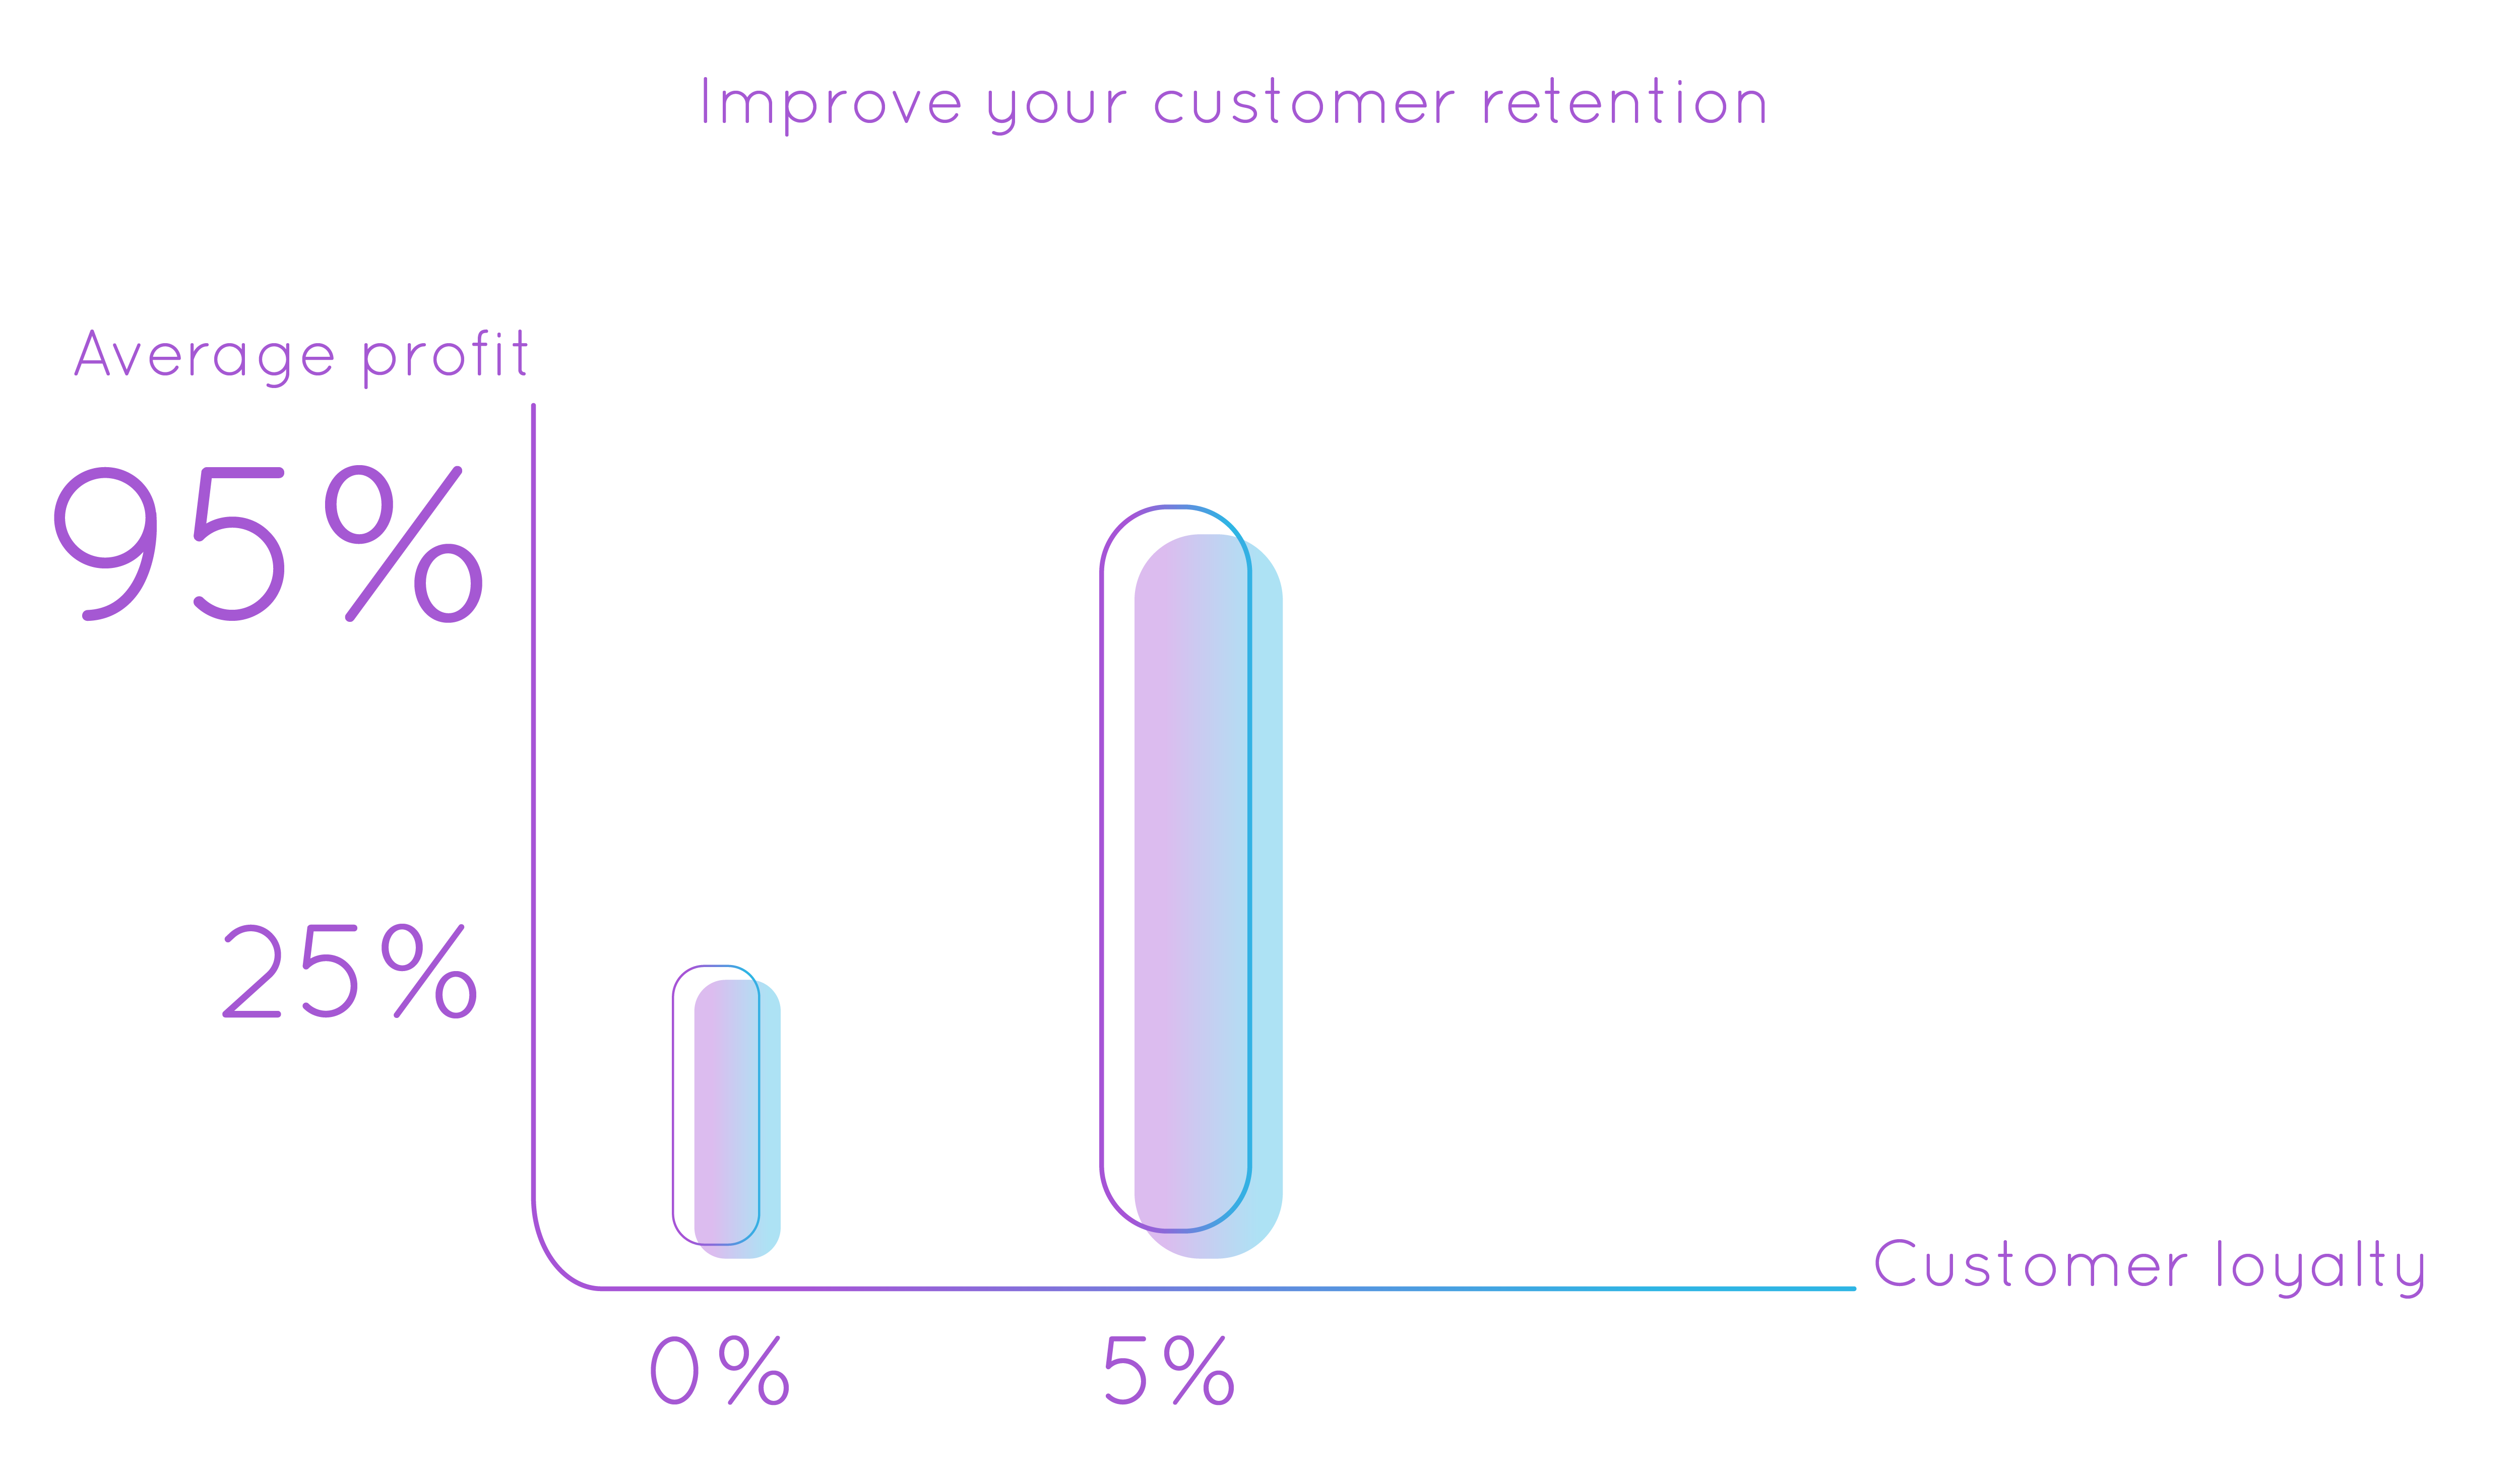 Improve your customer retention infographic